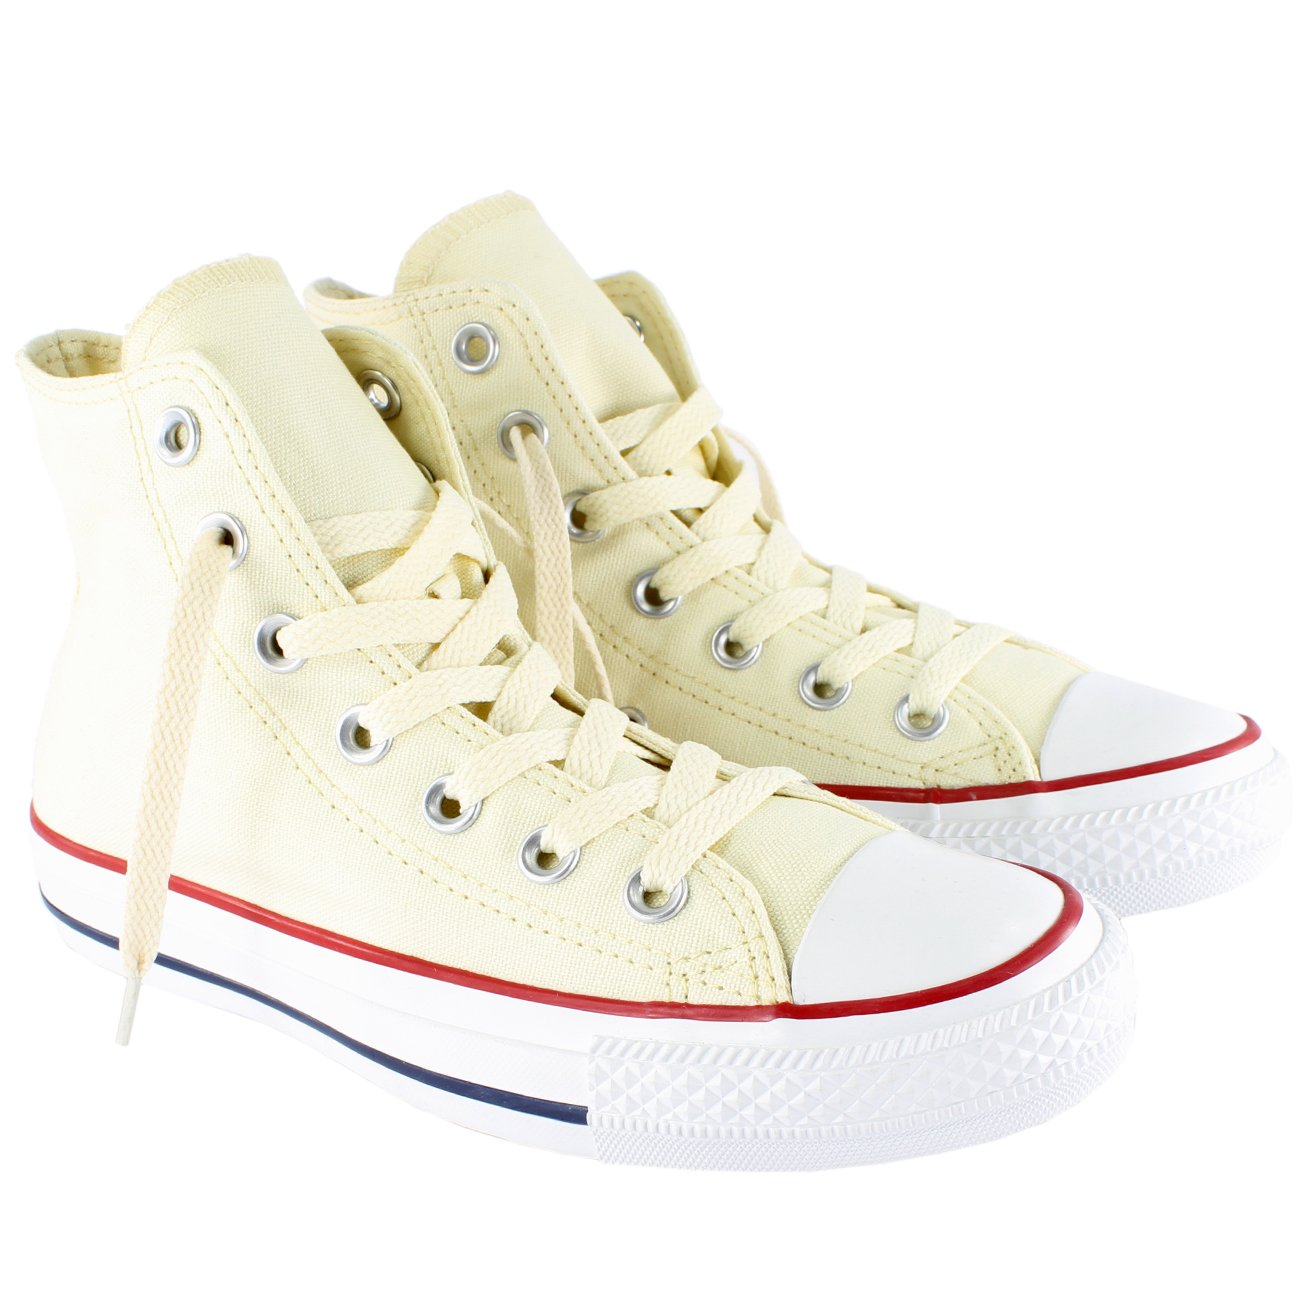 a70e21c2d52c Galleon - Converse Chuck Taylor All Star High Top Natural White M9162 Mens  10.5